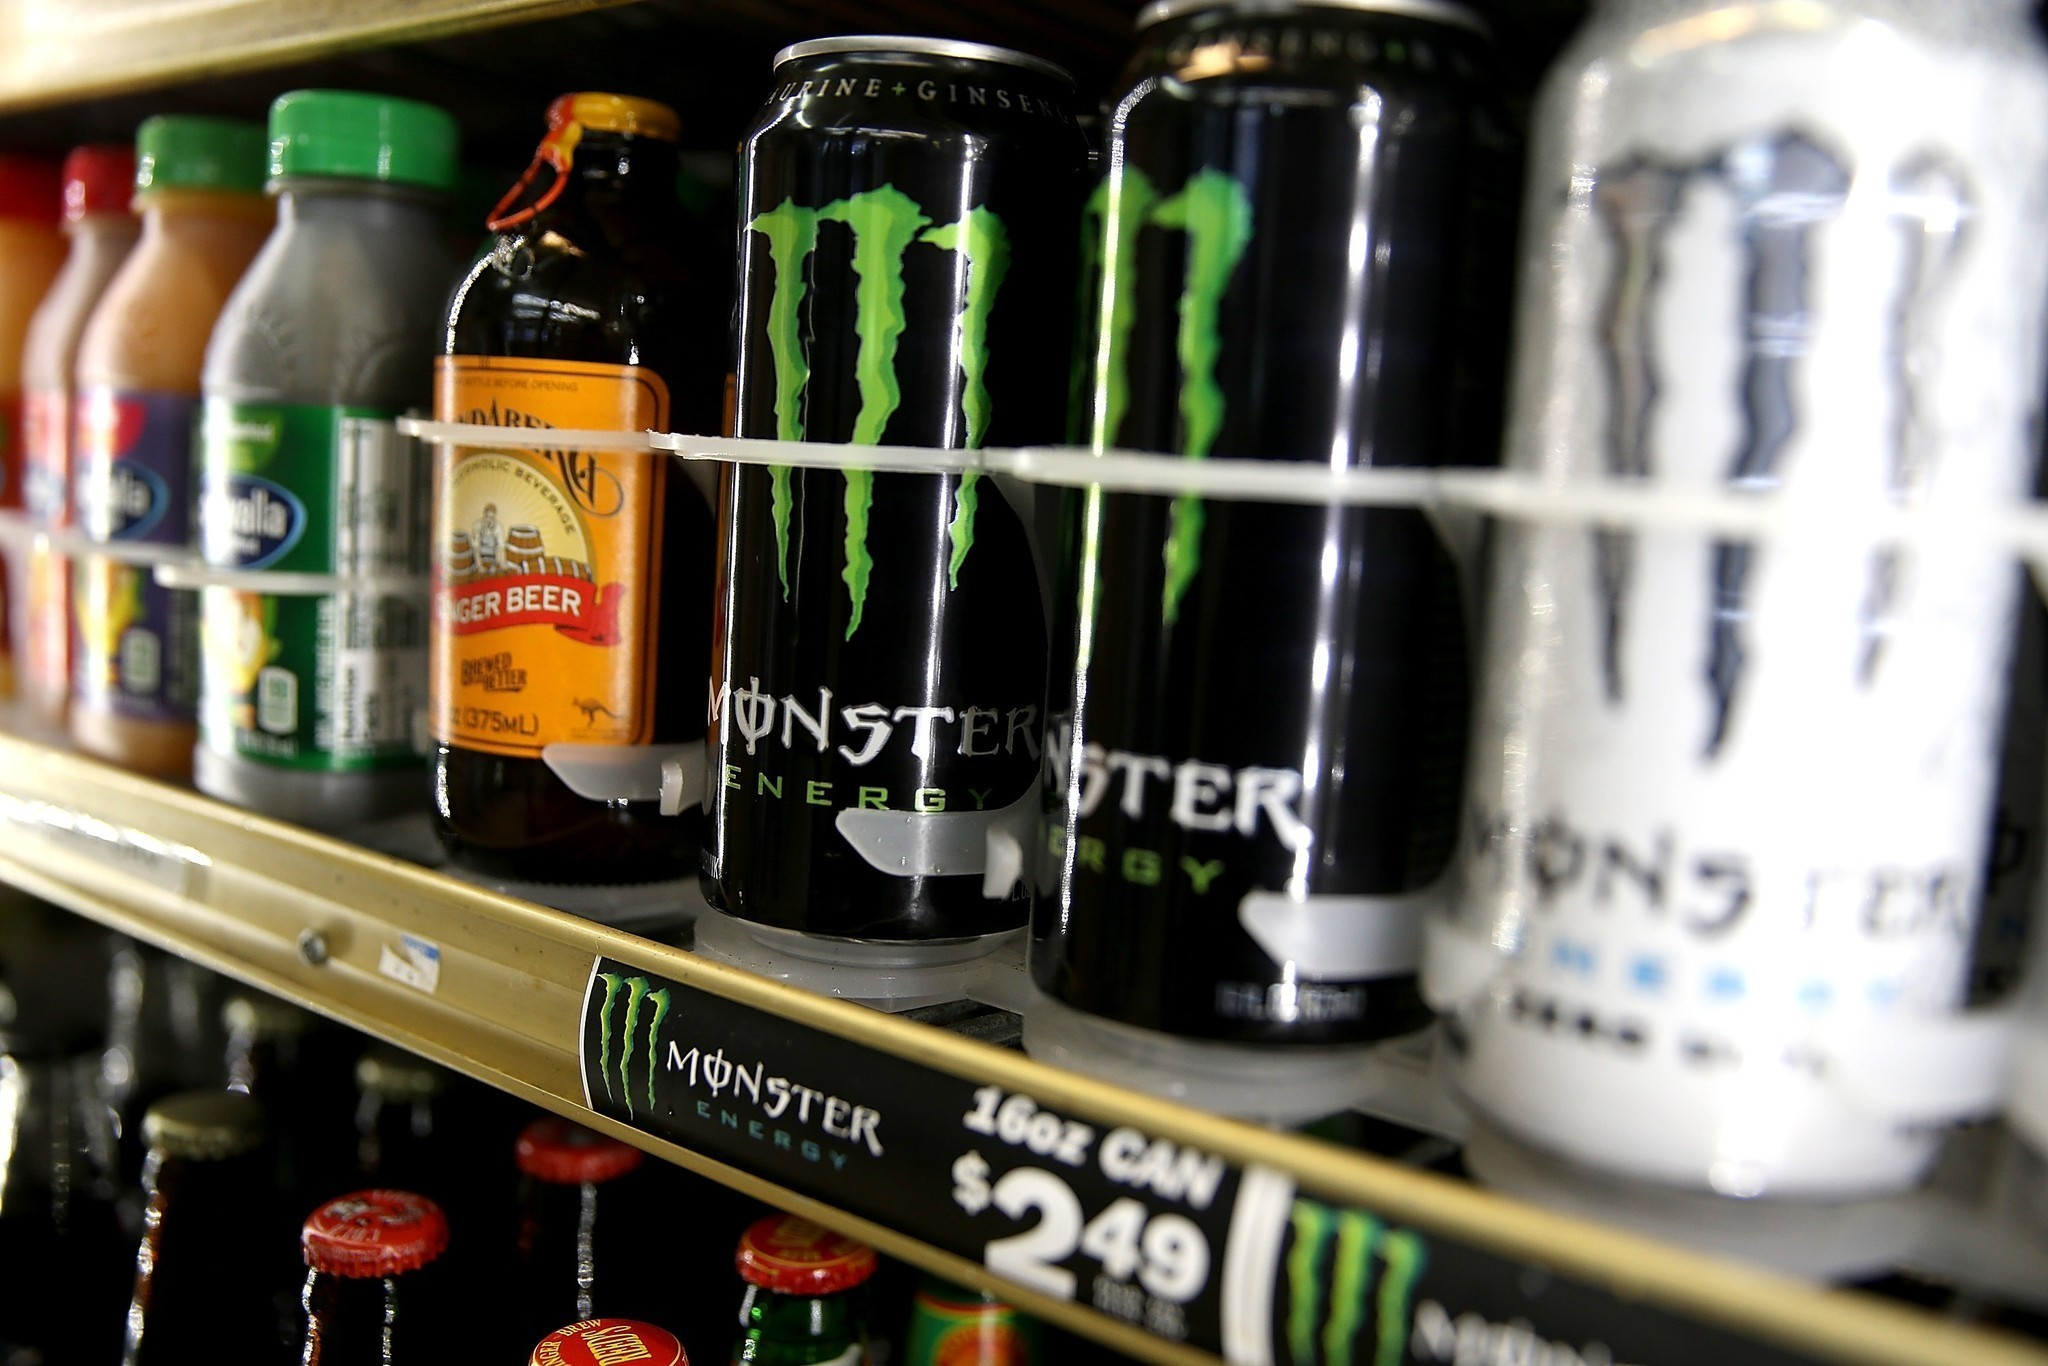 http://www.trbimg.com/img-586d1b22/turbine/la-fi-monster-energy-drinks-20170104